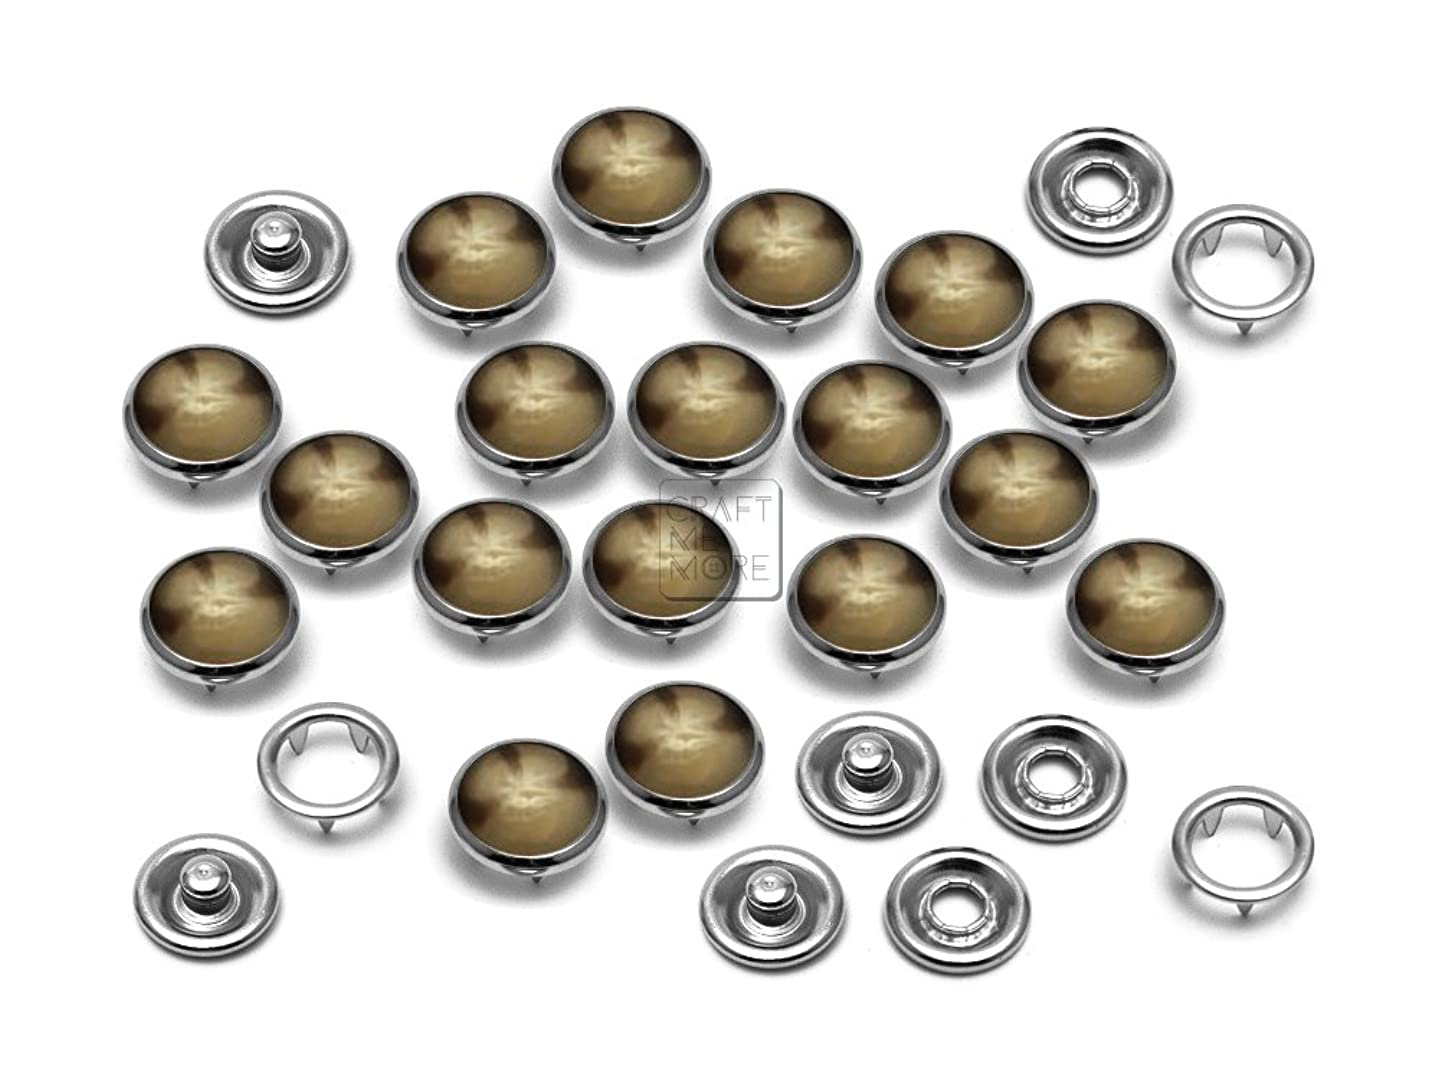 CRAFTMEmore 20 Sets 10.5MM Pearl Snaps Fasteners for Western Shirt Clothes Popper Studs (Brown Marble)